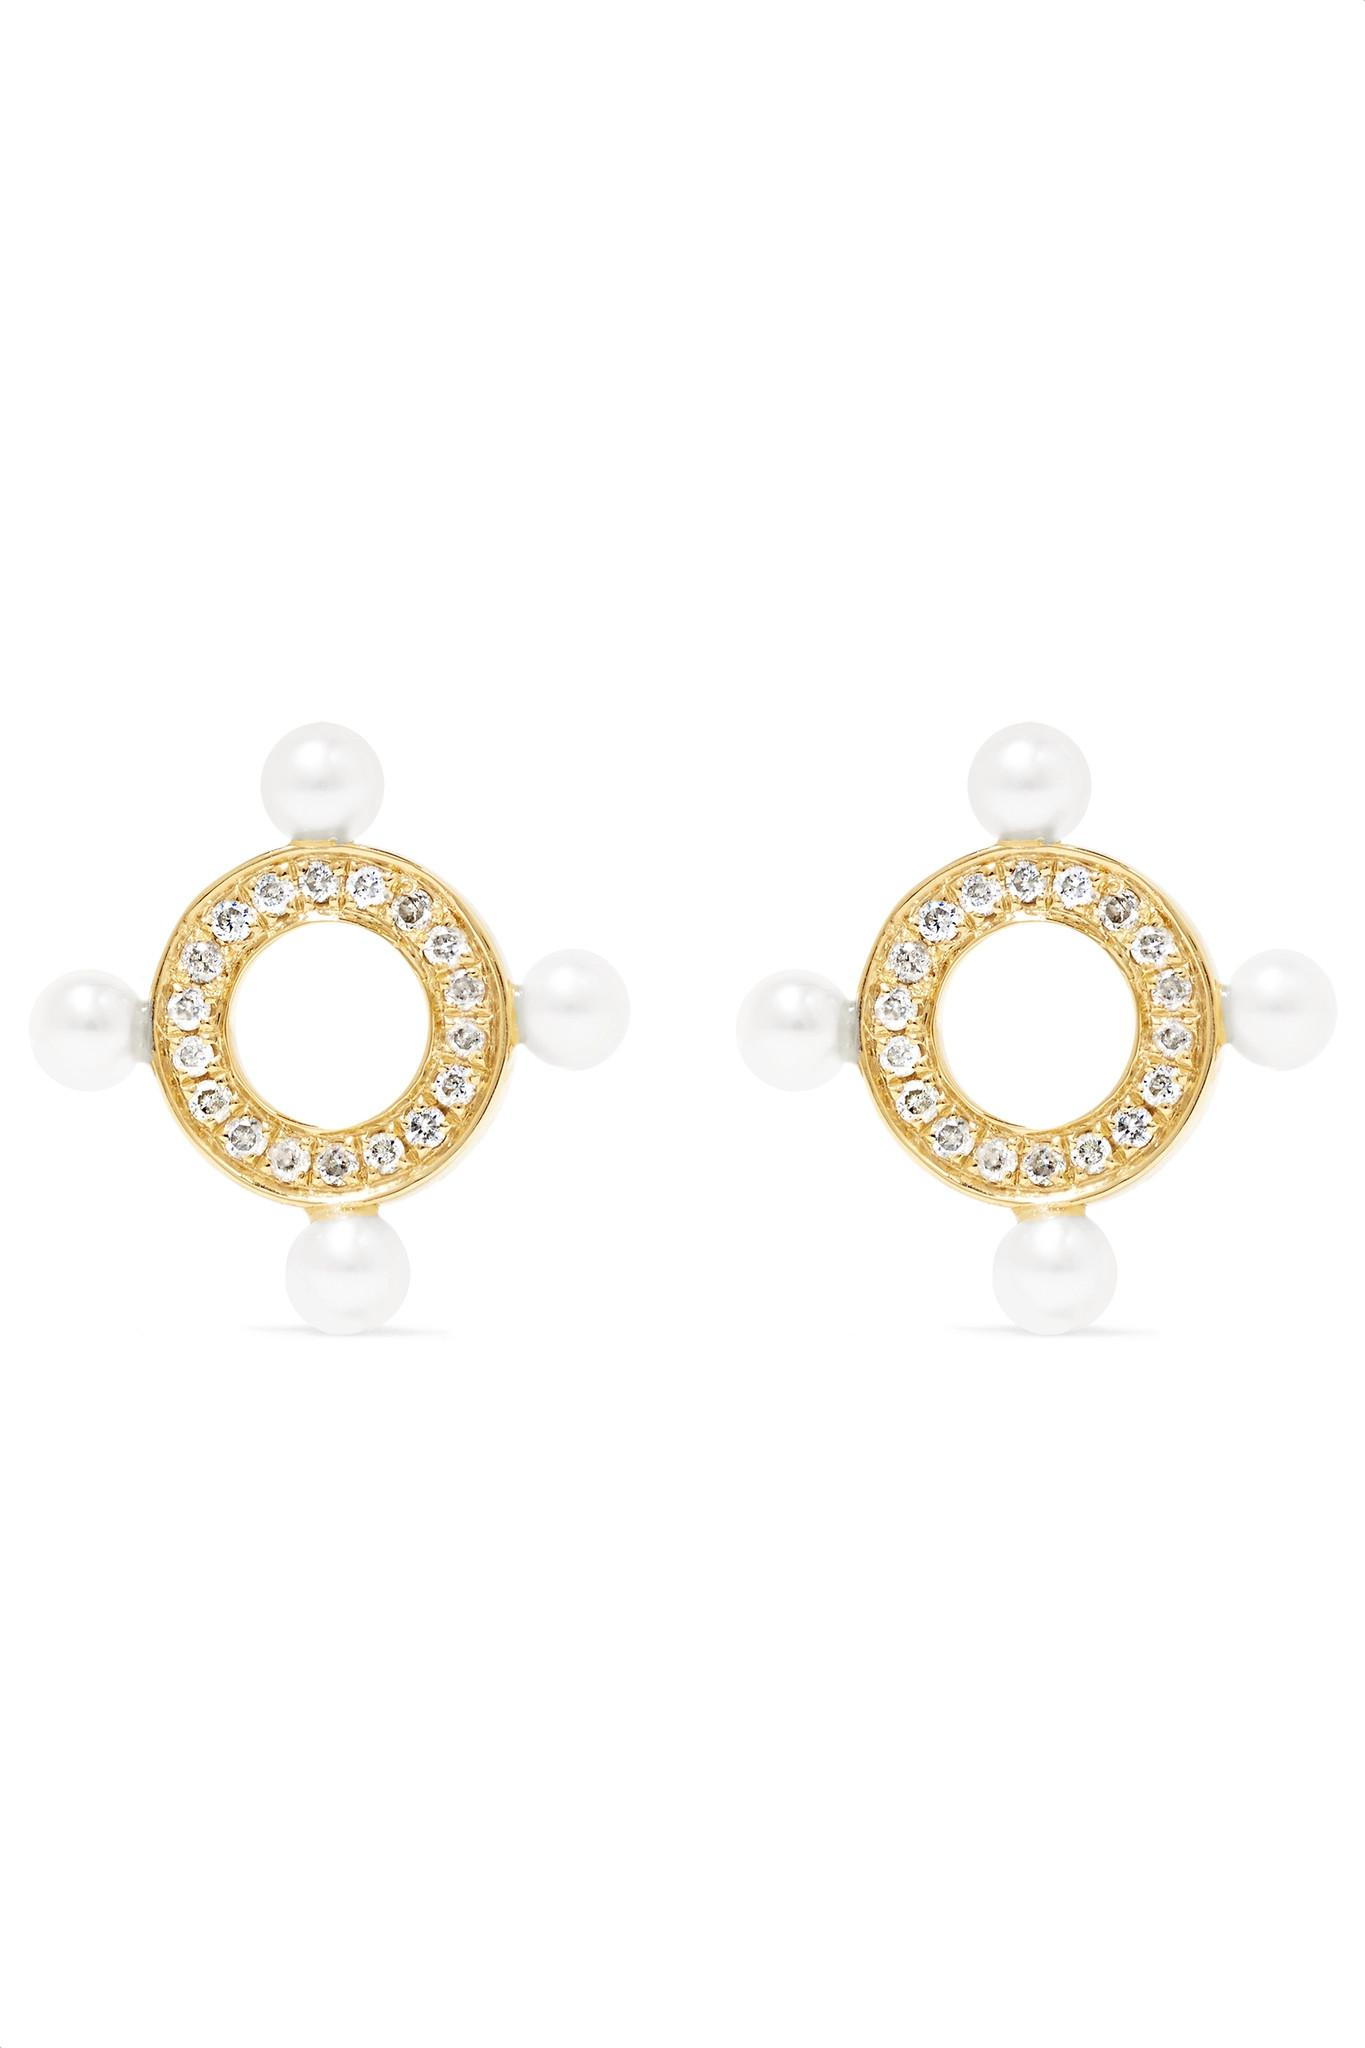 Cheap 100% Original Quatuor Mono Earring in 14K Yellow Gold and Diamonds Anissa Kermiche Marketable For Sale Recommend Outlet Perfect Buy Cheap Recommend ELOVNRqG